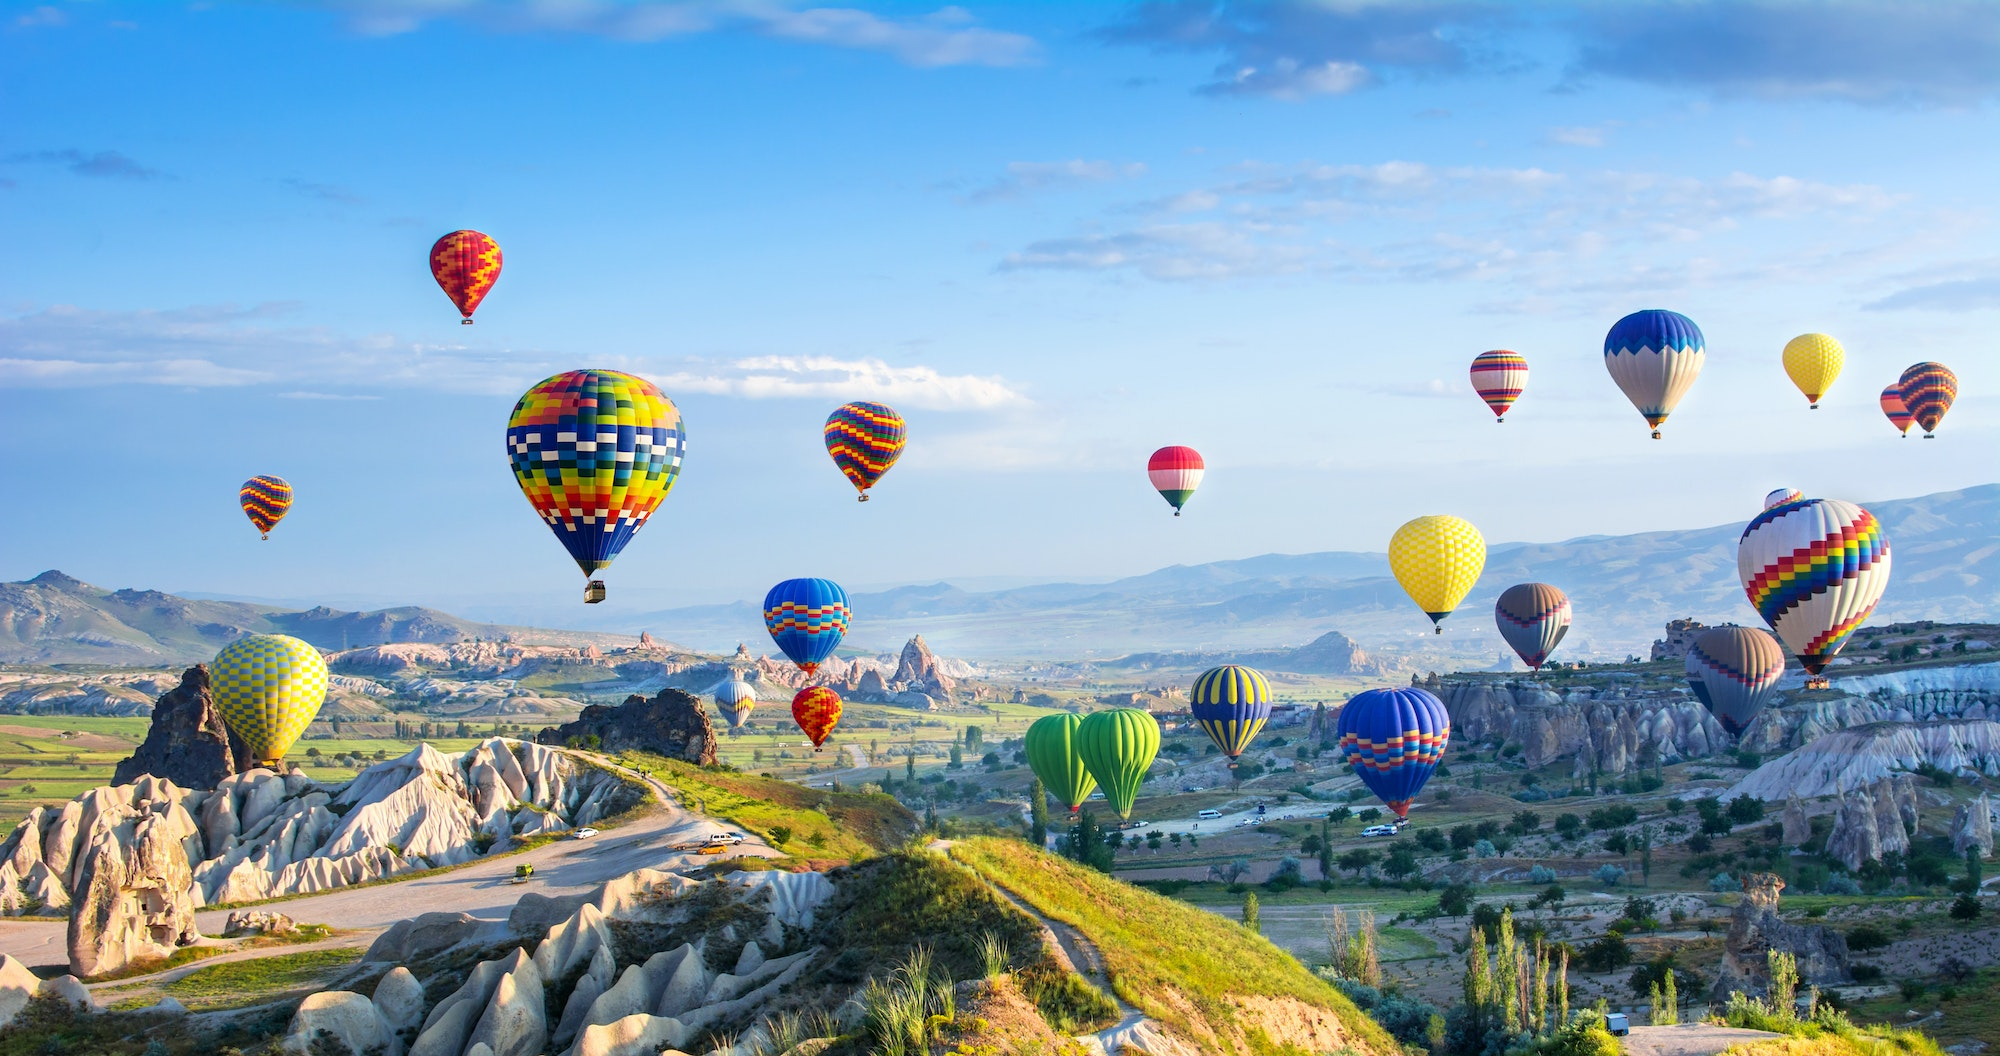 The Most Incredible Hot Air Balloon Rides Around the World